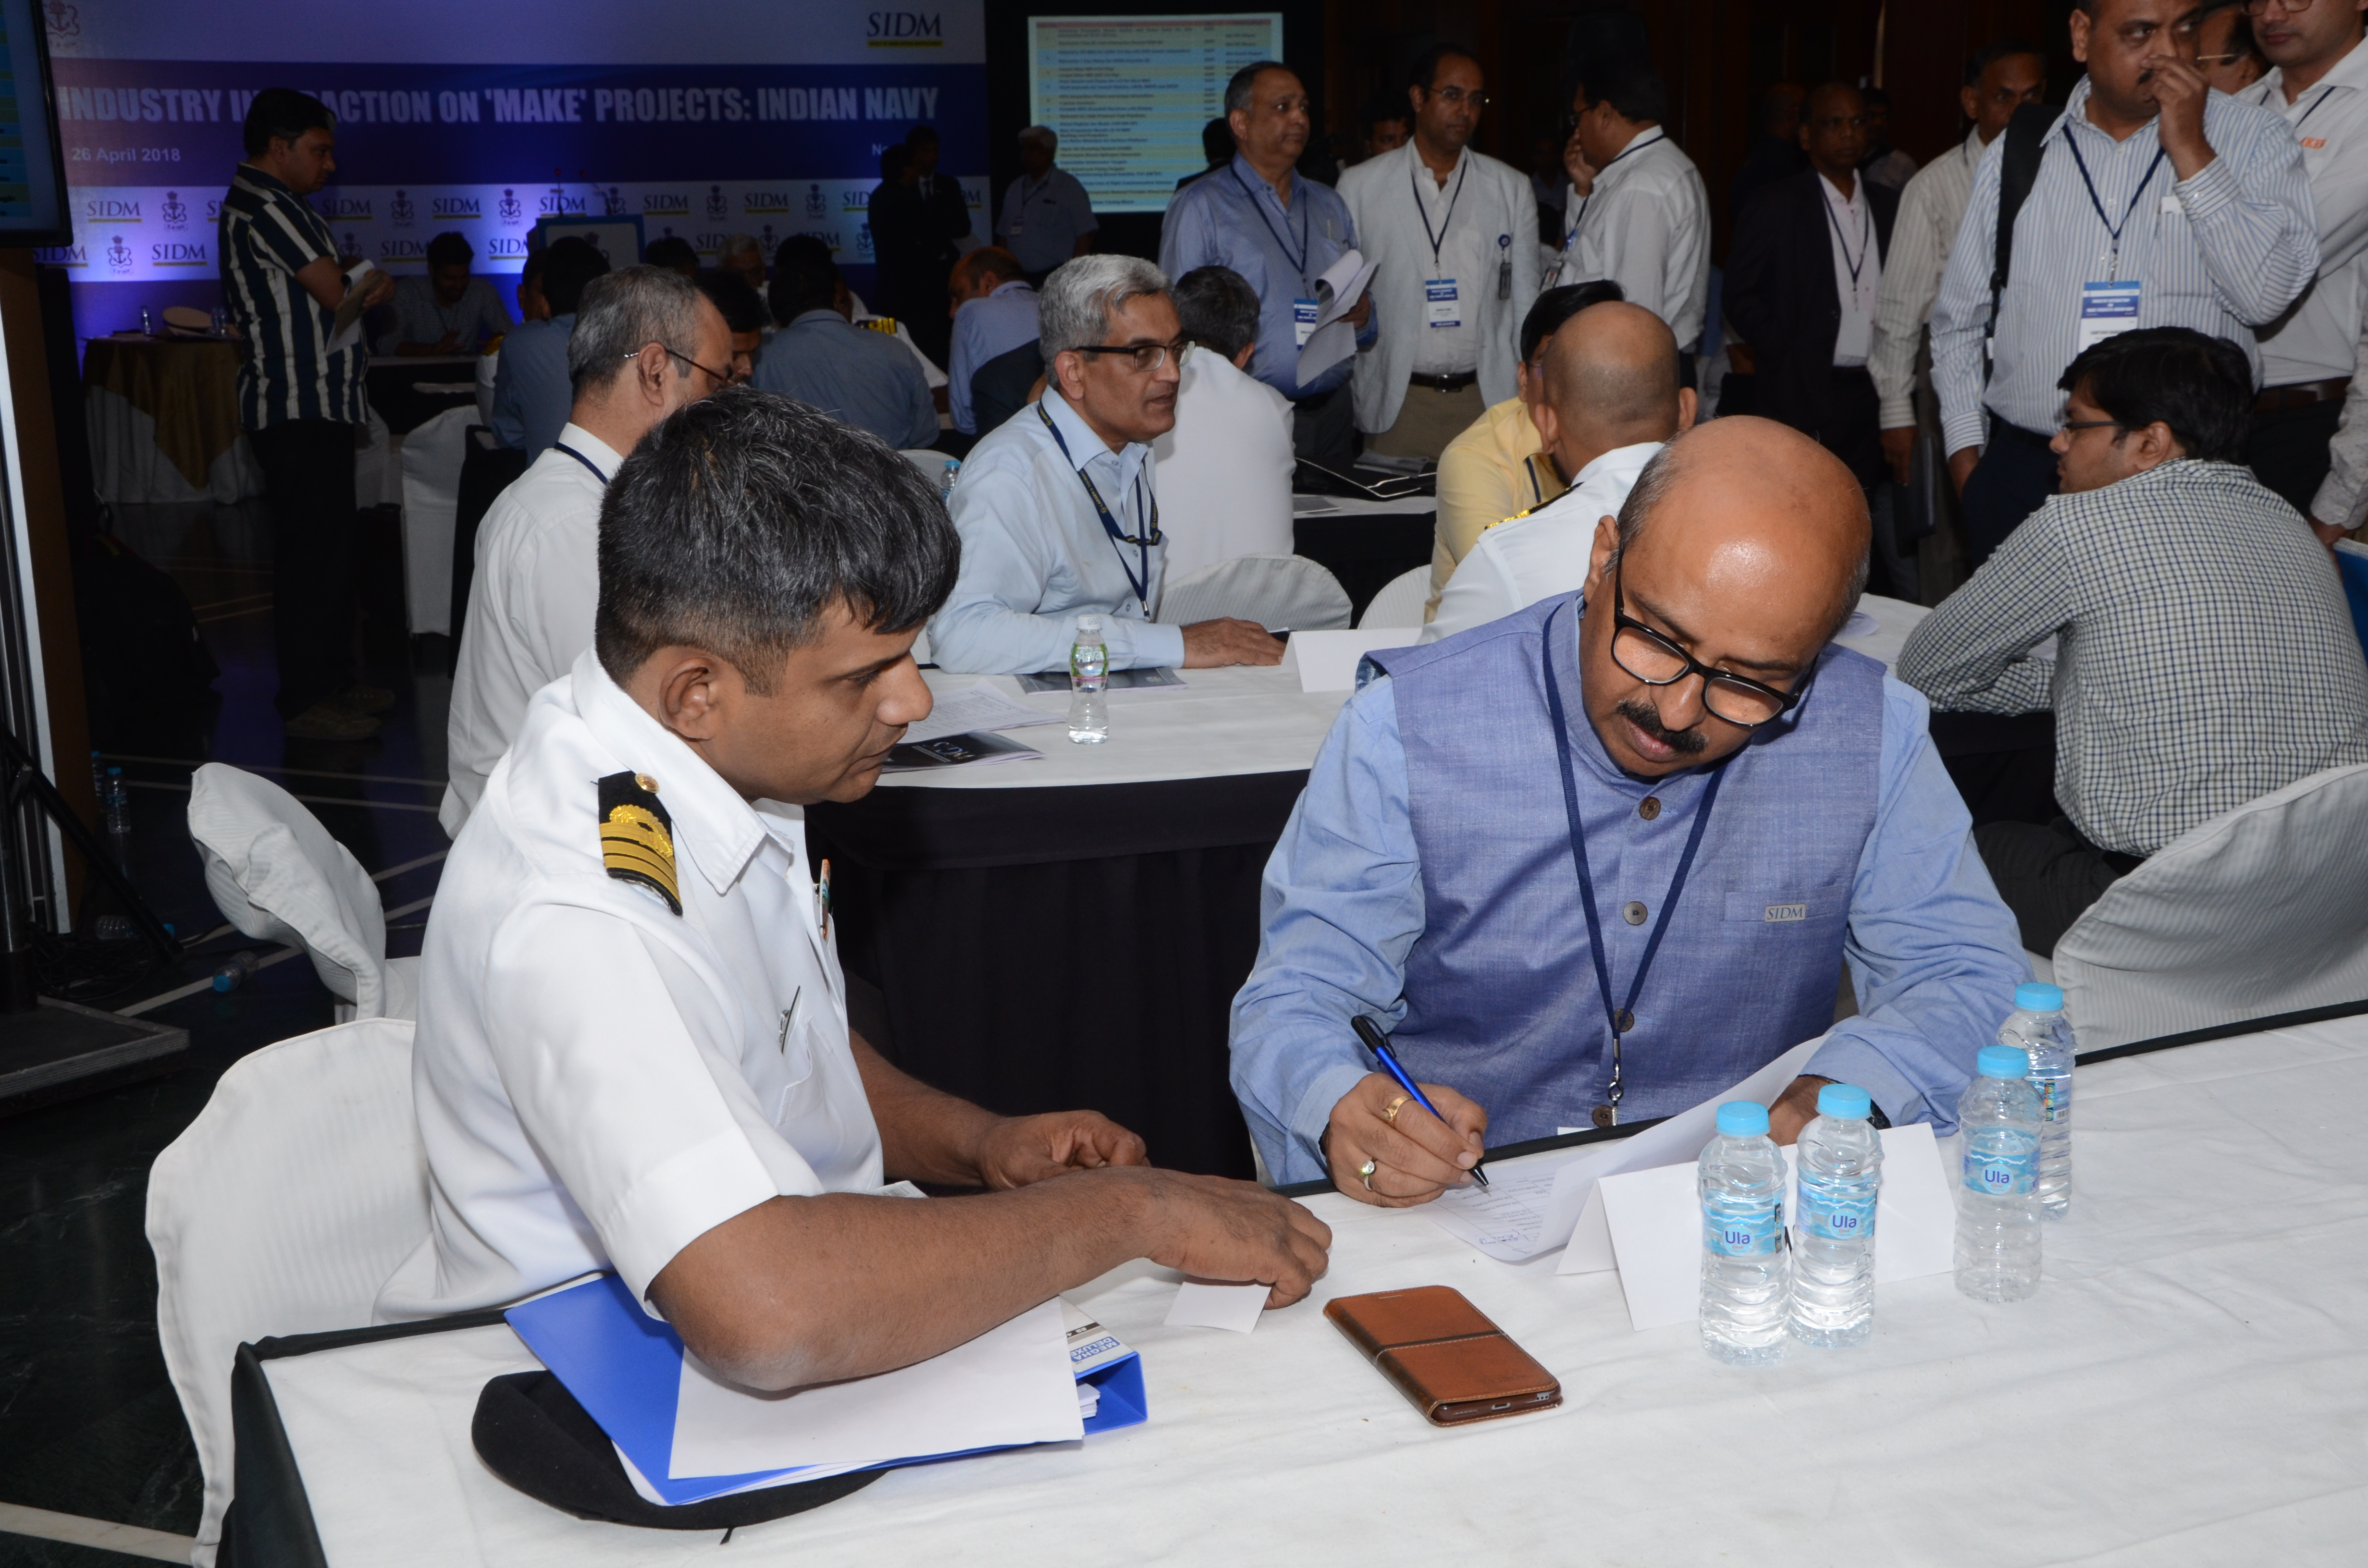 Industry Interaction On 'Make' Project: Indian Navy